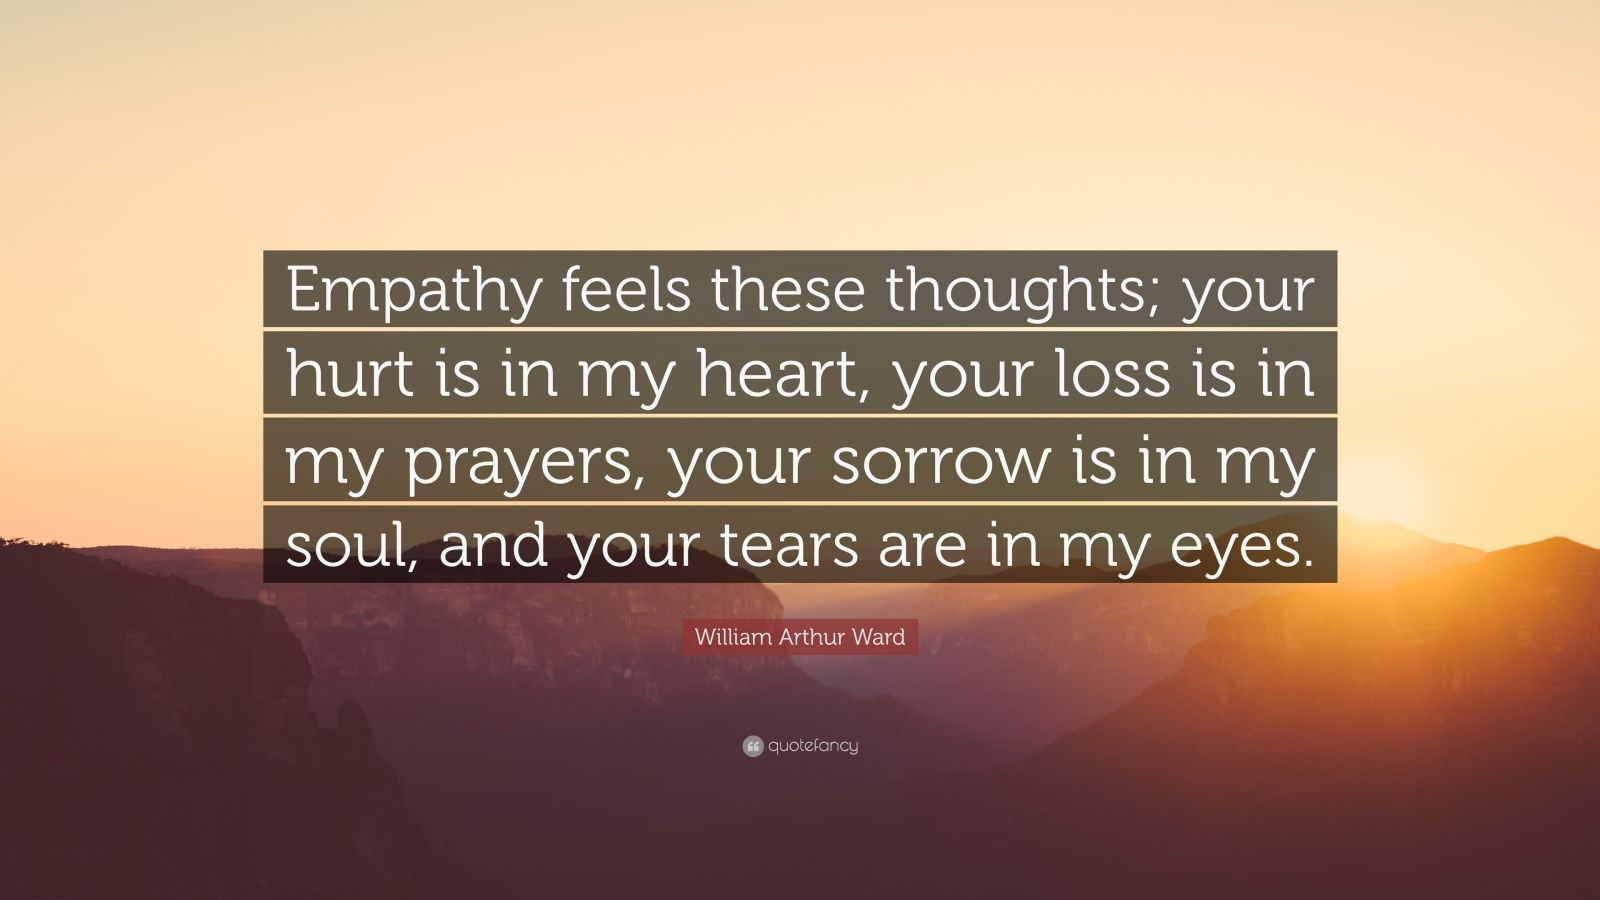 Sorrow Wallpapers With Quotes William Arthur Ward Quote Empathy Feels These Thoughts